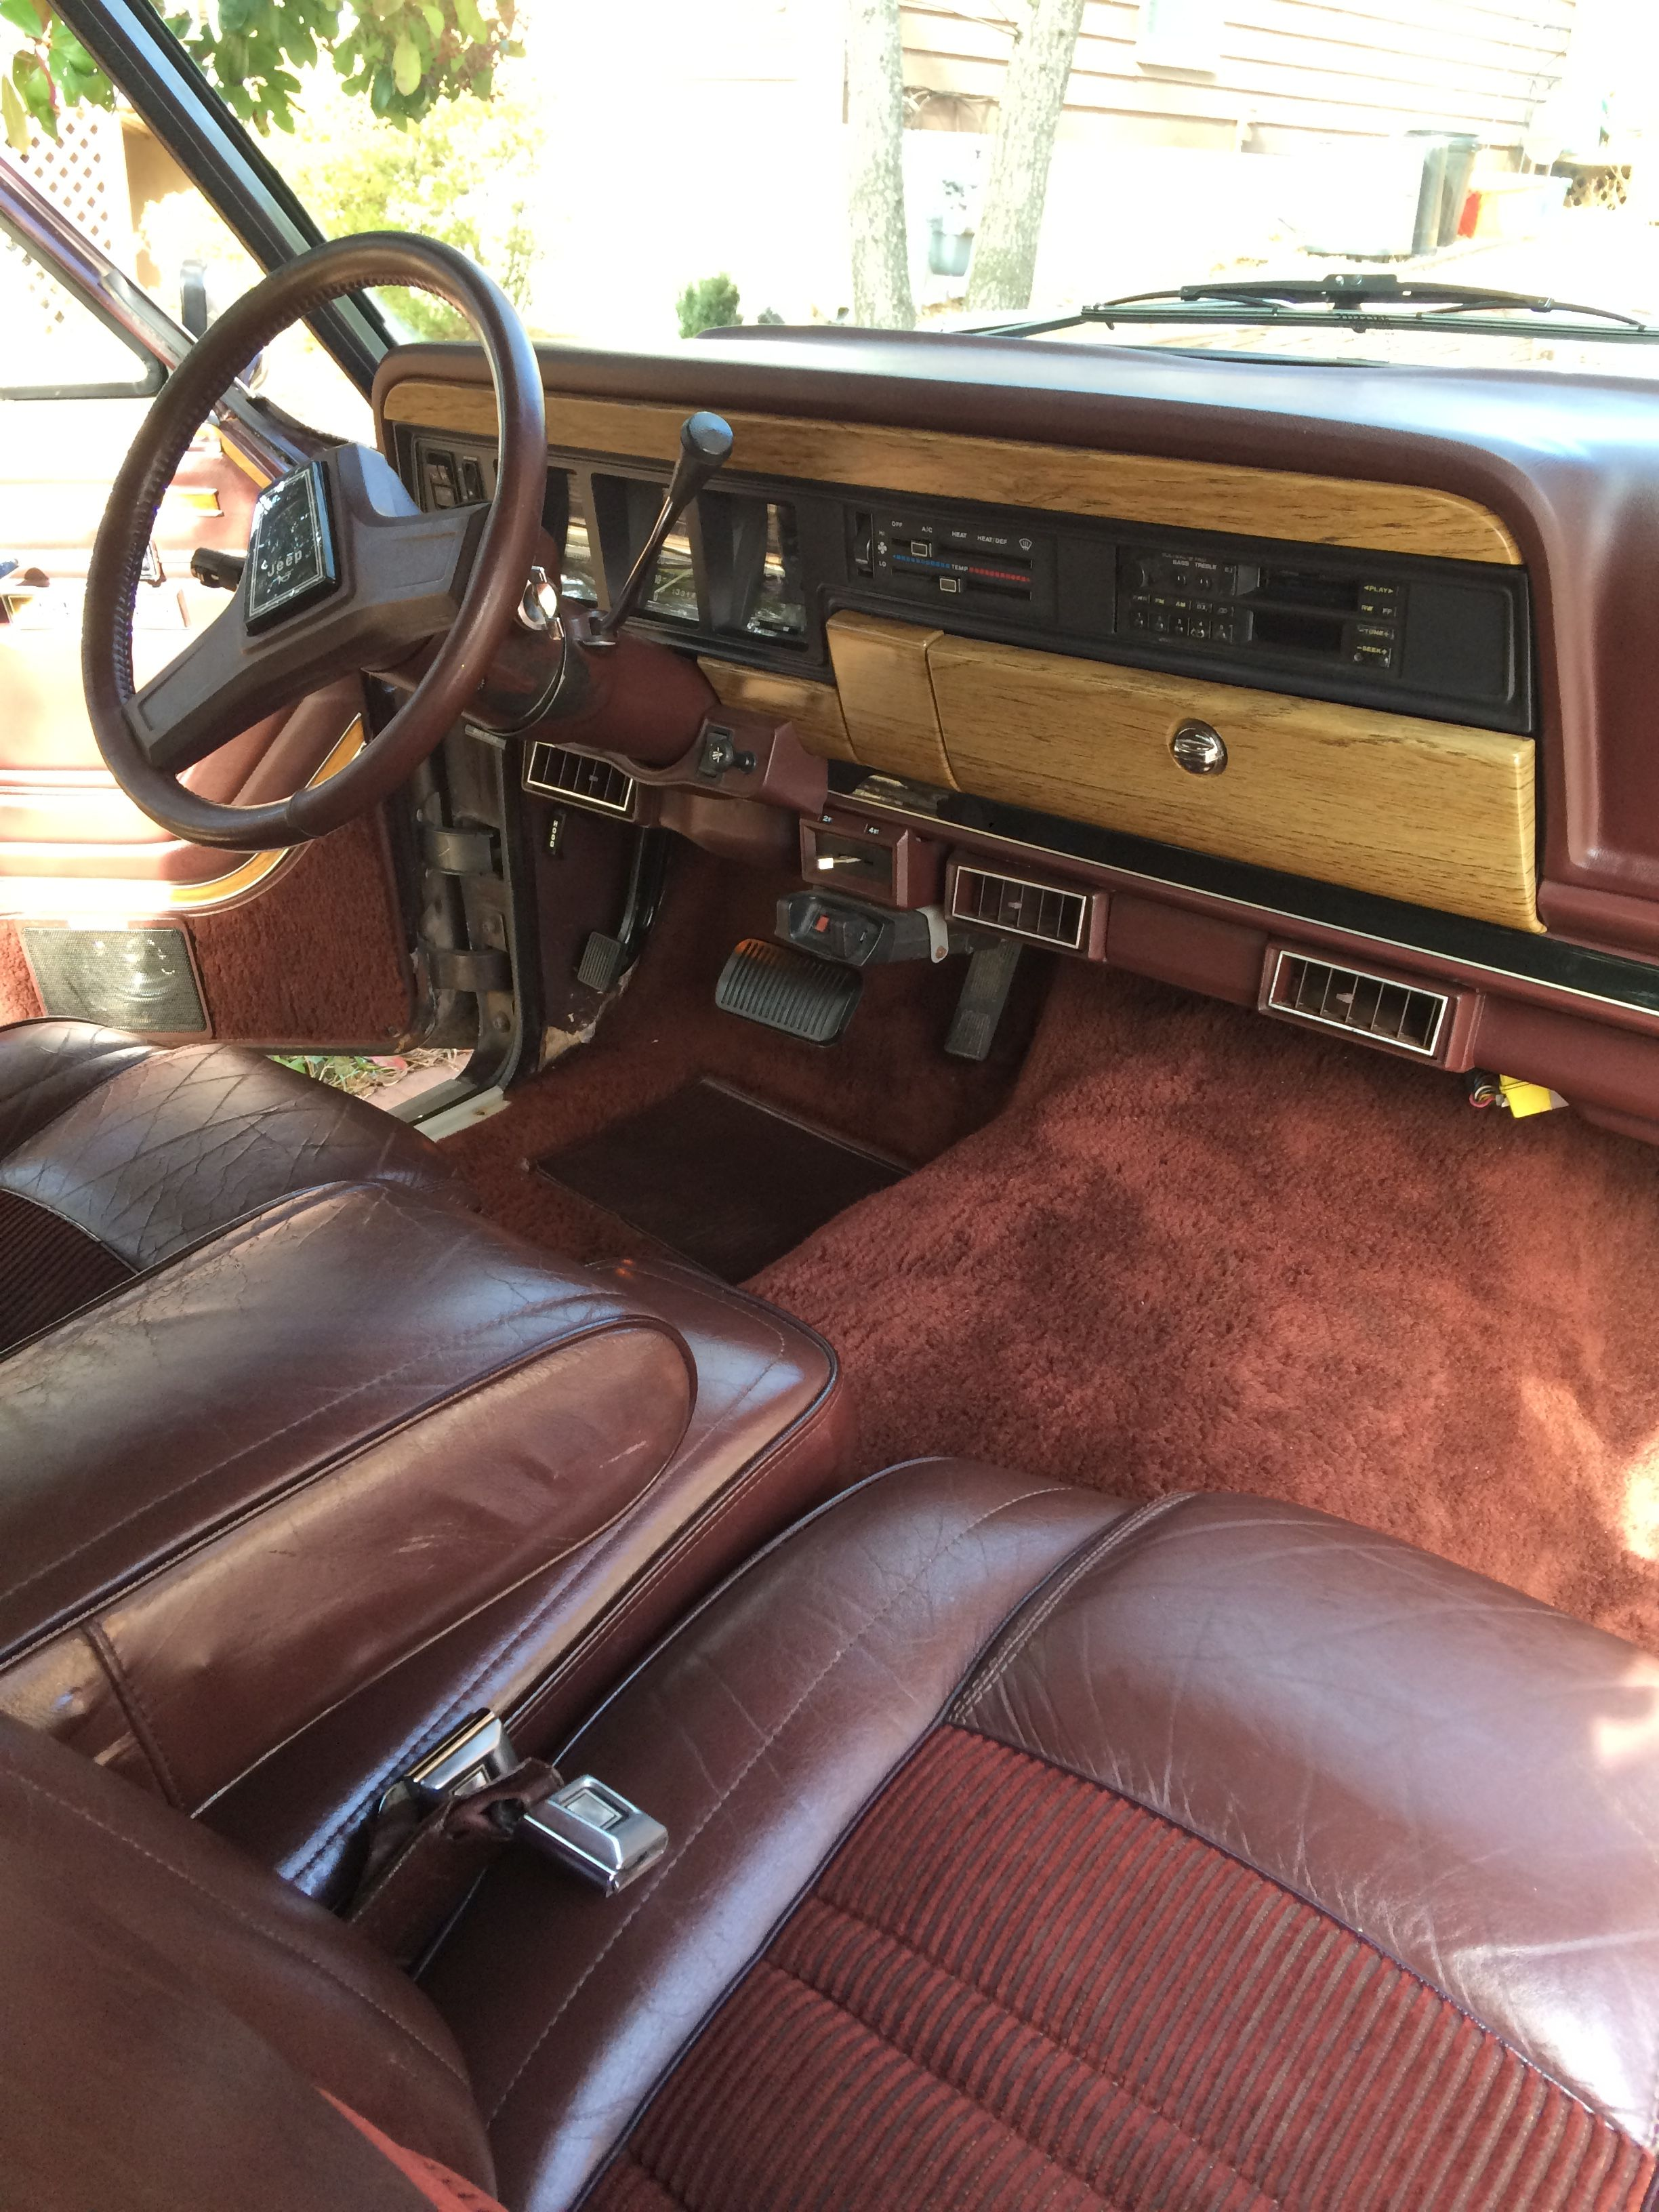 1989 Jeep Grand Wagoneer Interior Jeep Suv Jeep Wagoneer Old Jeep